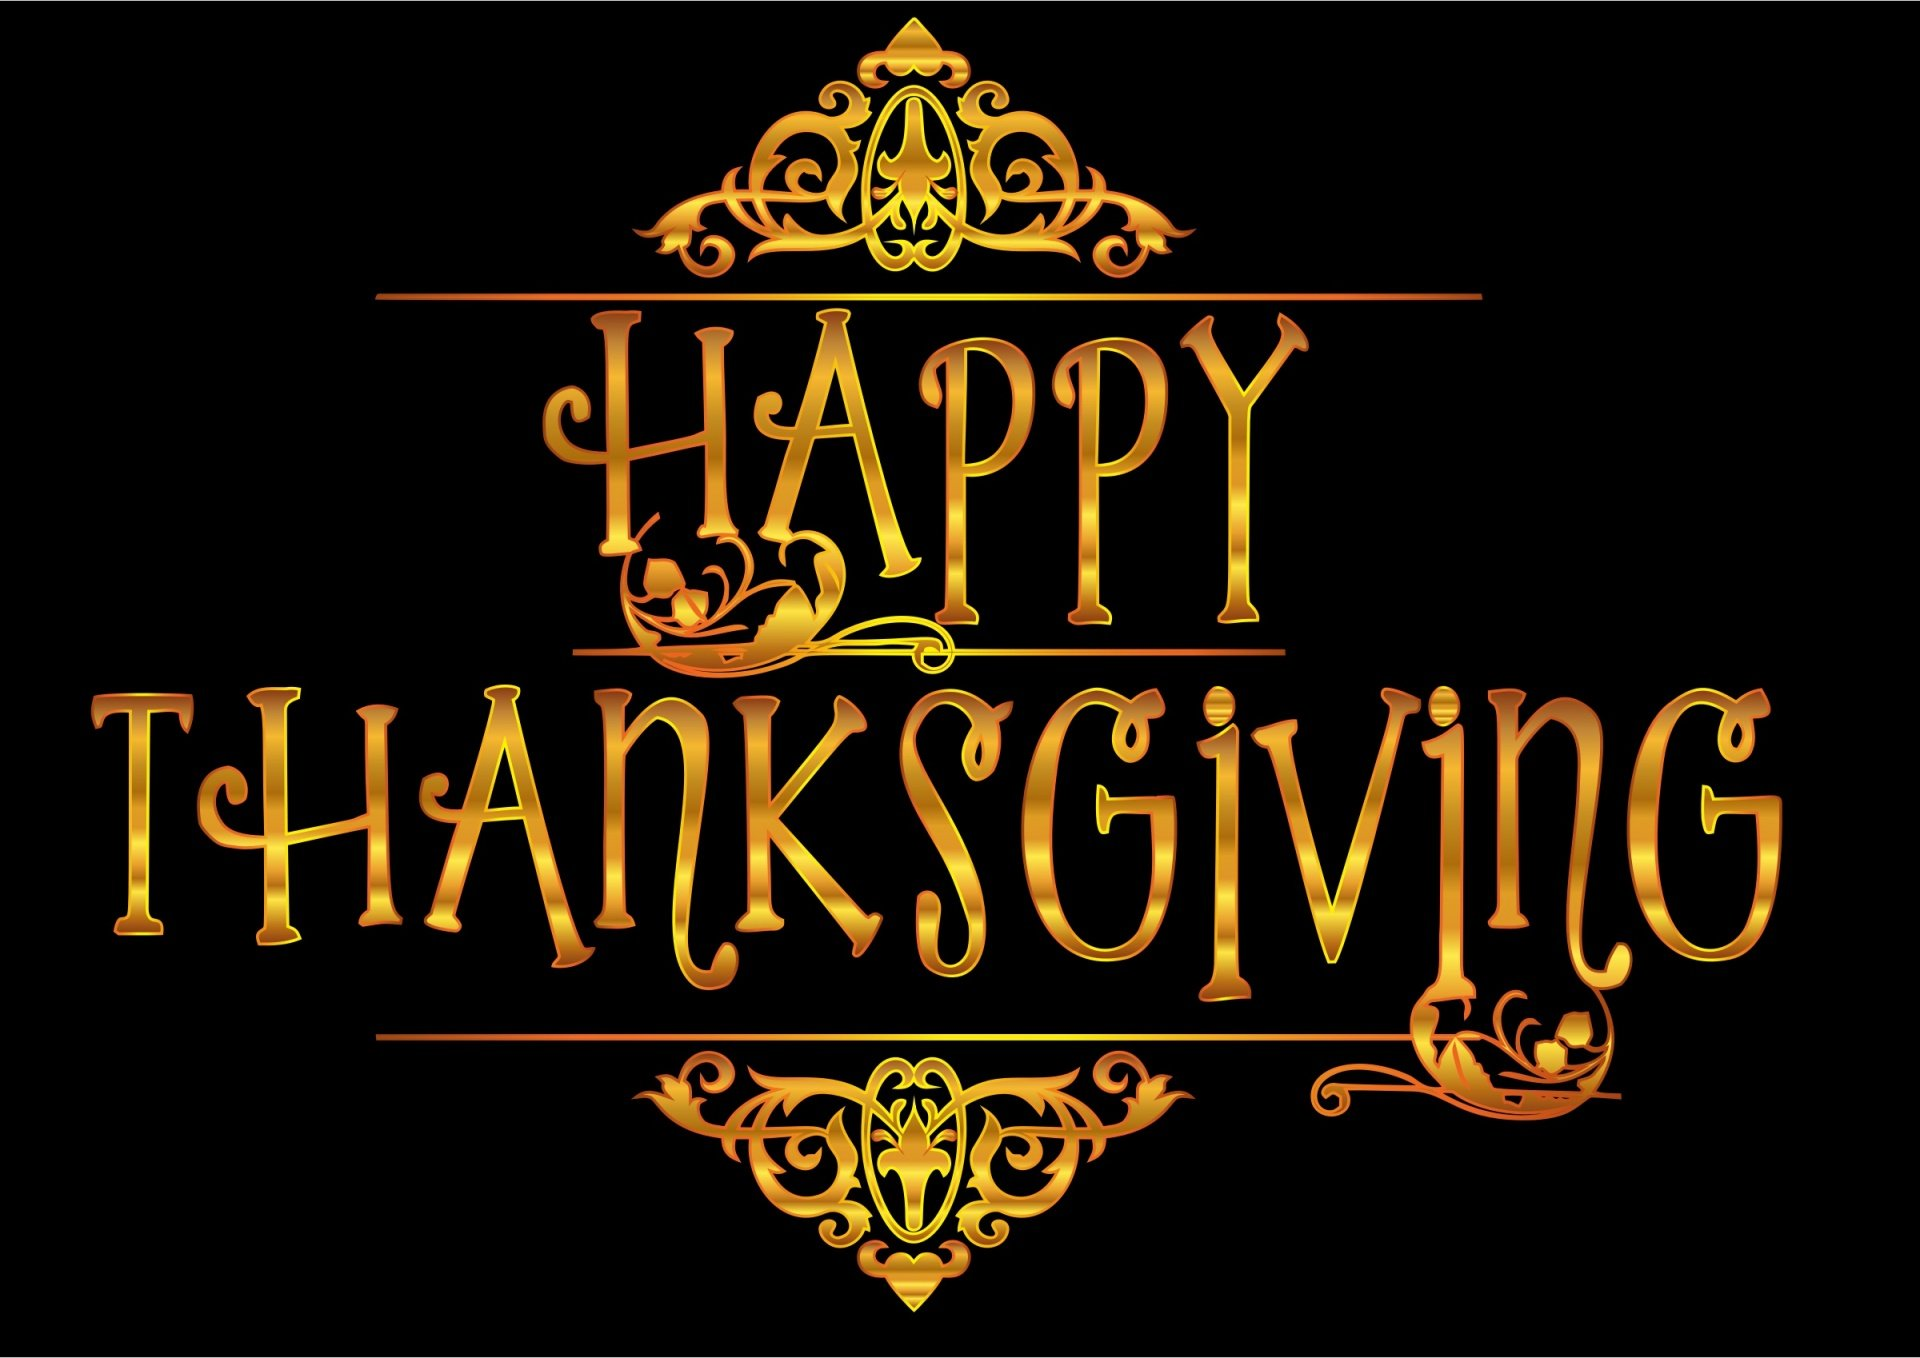 happy-thanksgiving-black-background-graphic image